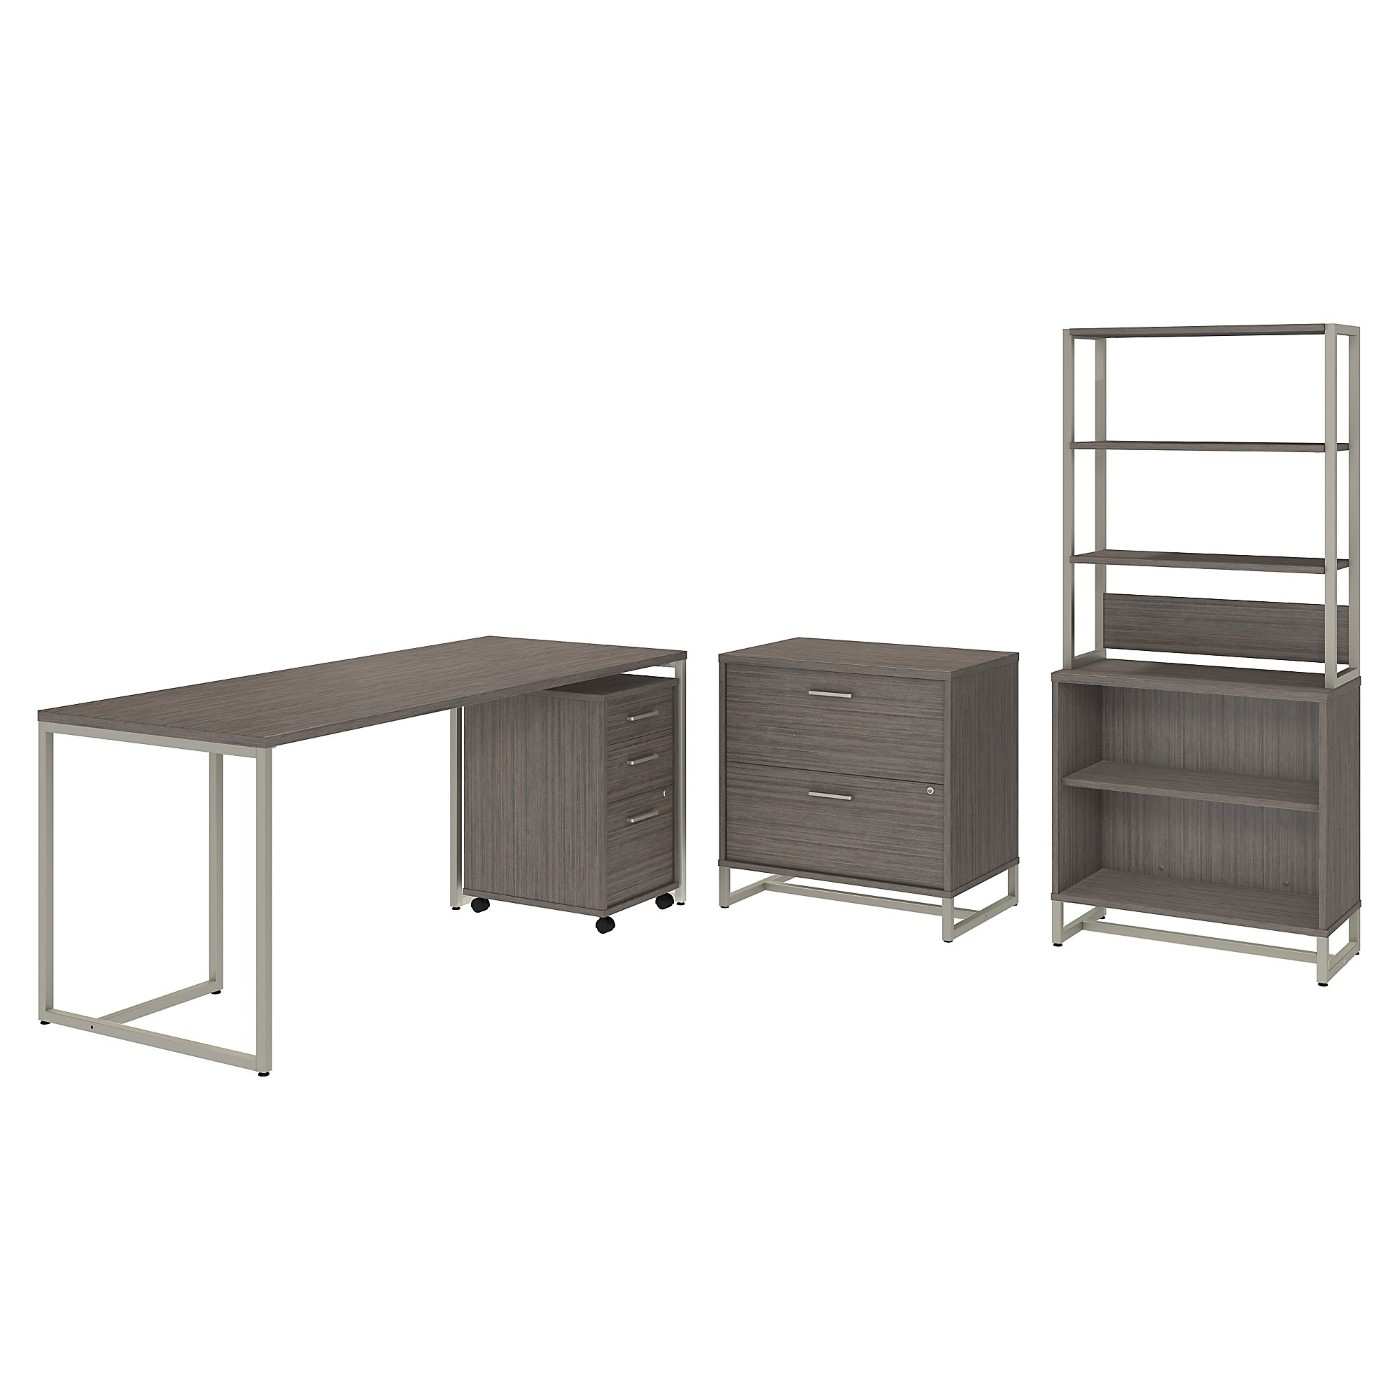 OFFICE BY KATHY IRELAND® METHOD 72W TABLE DESK WITH FILE CABINETS AND BOOKCASE. FREE SHIPPING SALE DEDUCT 10% MORE ENTER '10percent' IN COUPON CODE BOX WHILE CHECKING OUT.